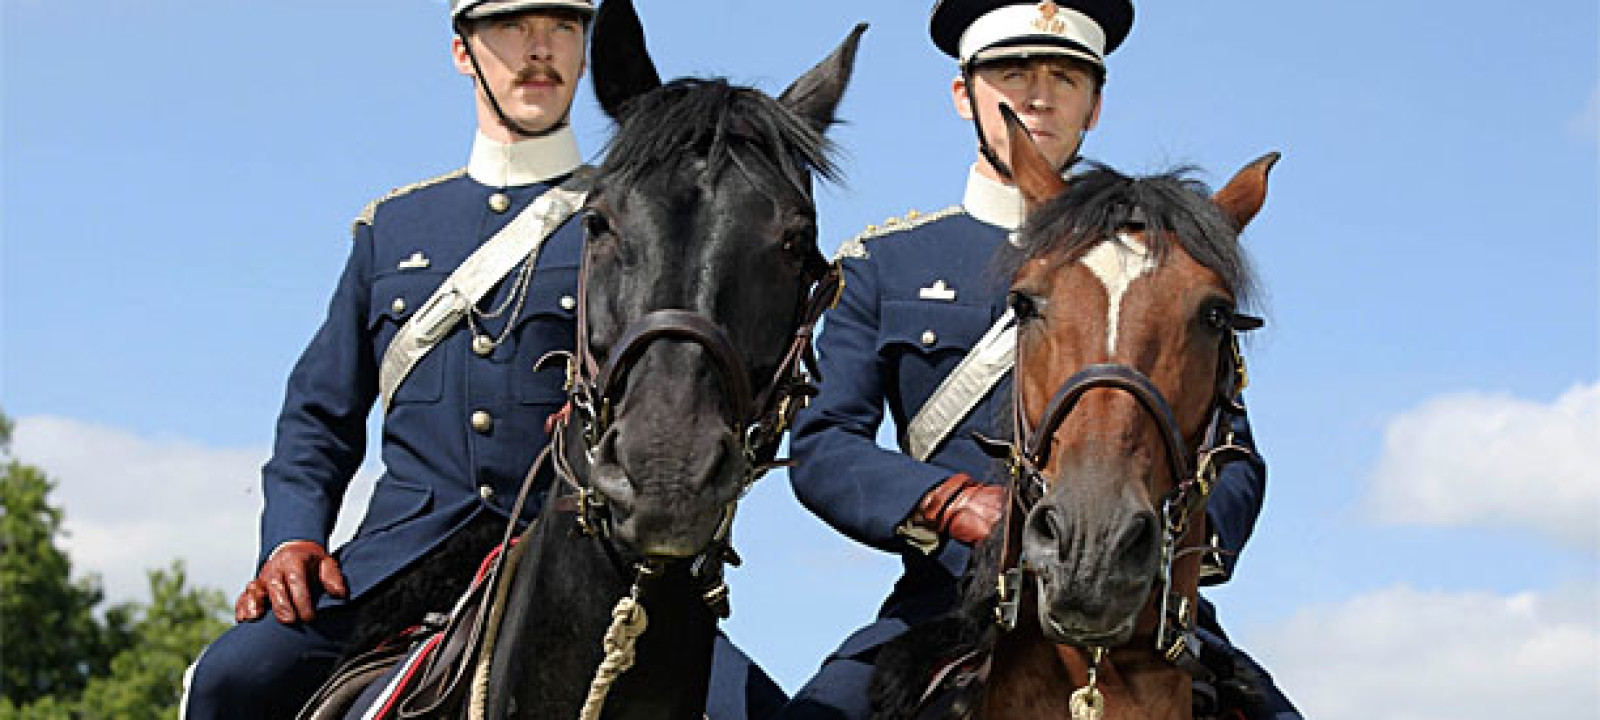 Benedict Cumberbatch and Tom Hiddleston in 'War Horse'